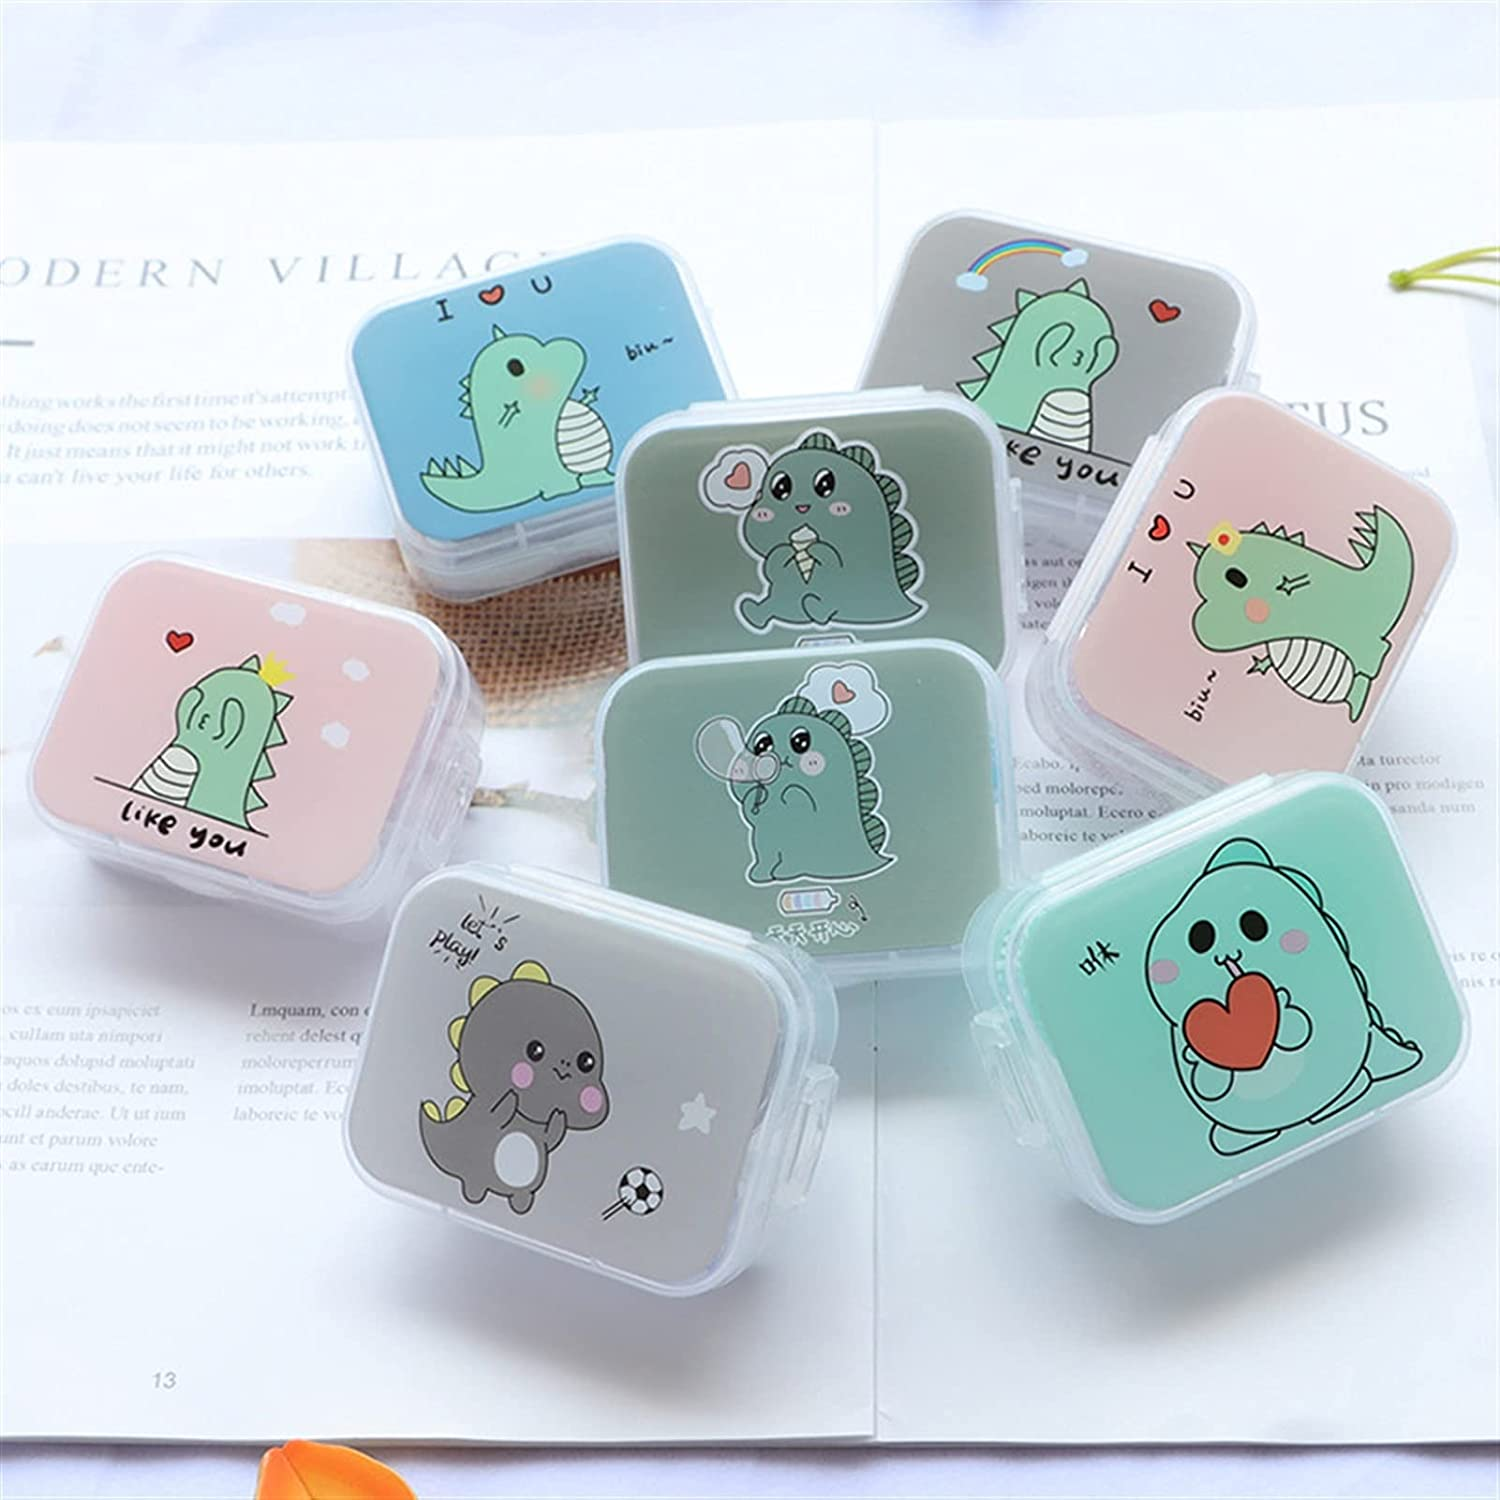 Free shipping on posting reviews LUBINGT Contact Lens Case Cut Outlet sale feature Cartoon New Mini